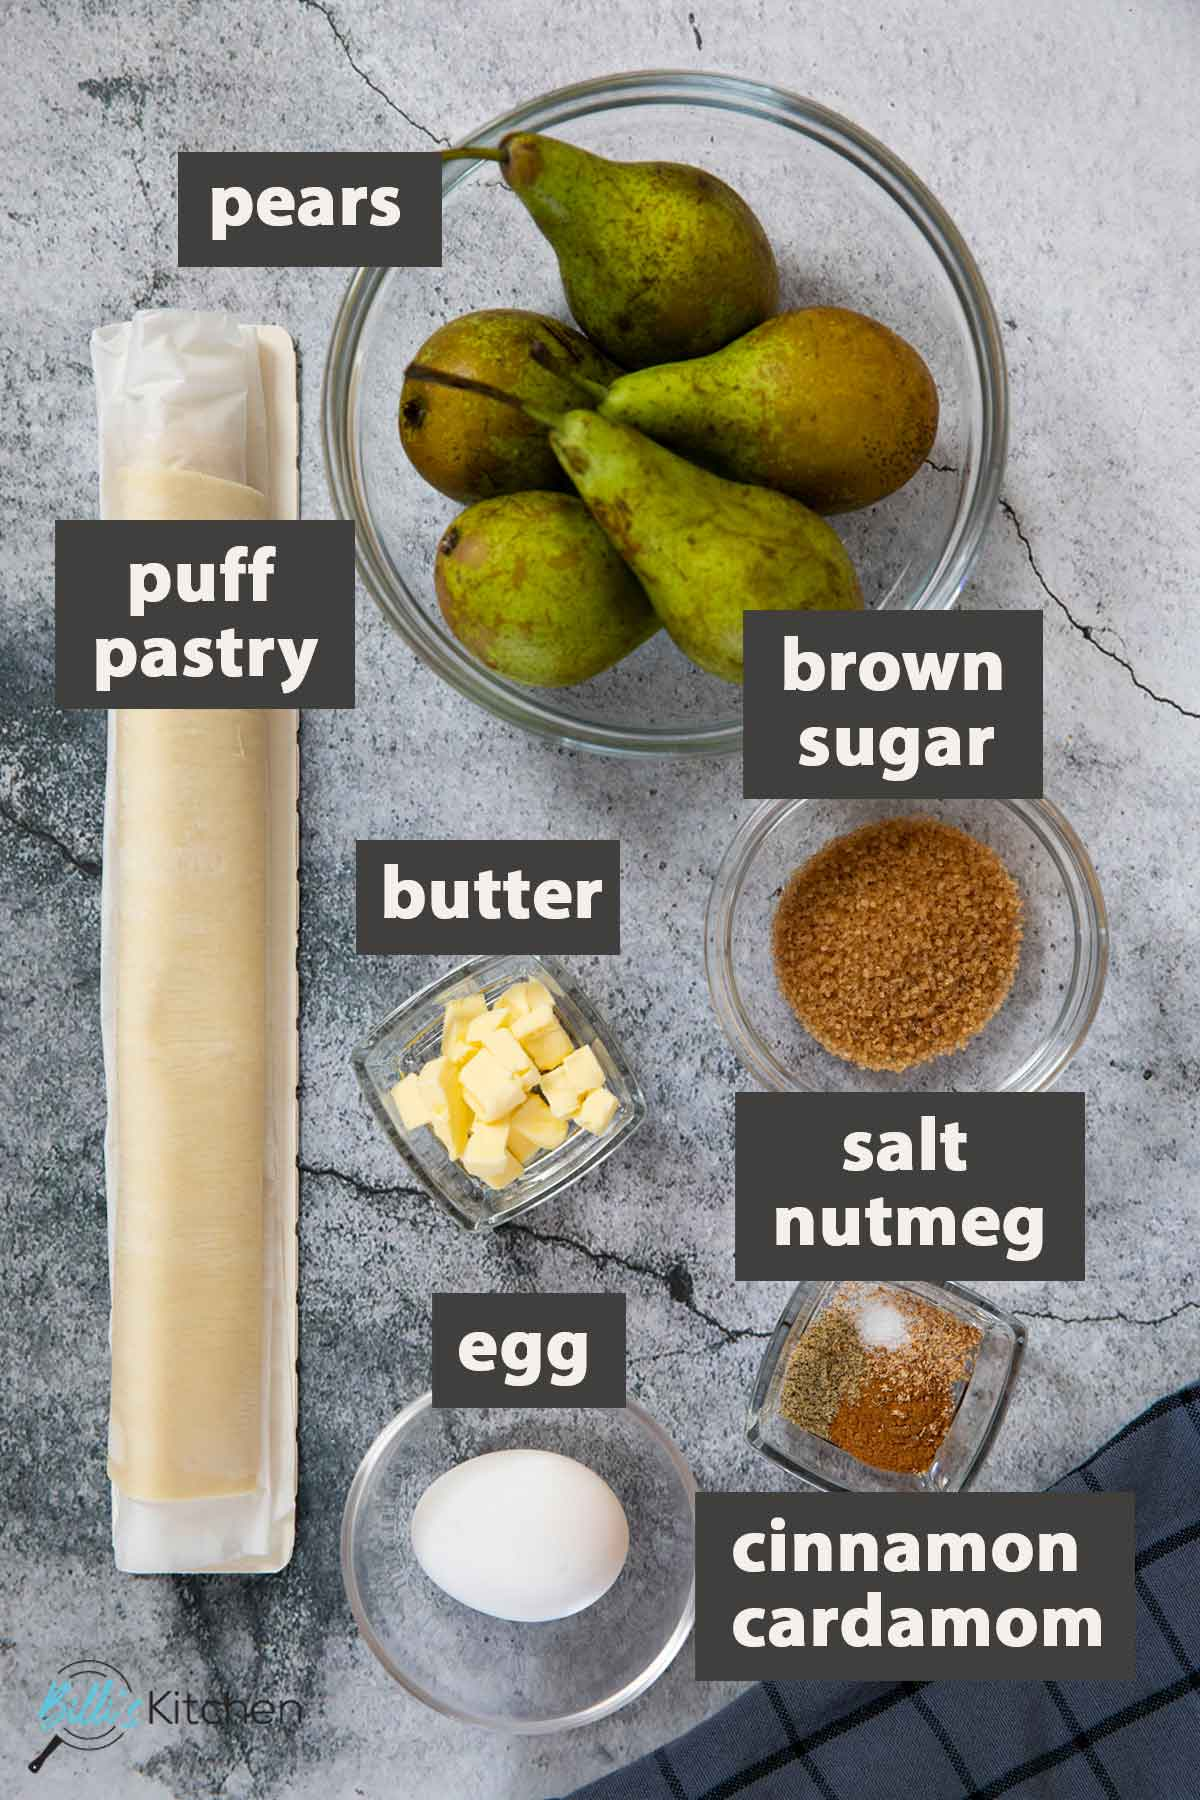 An image showing all the ingredients you need to prepare pear tart with puff pastry at home.